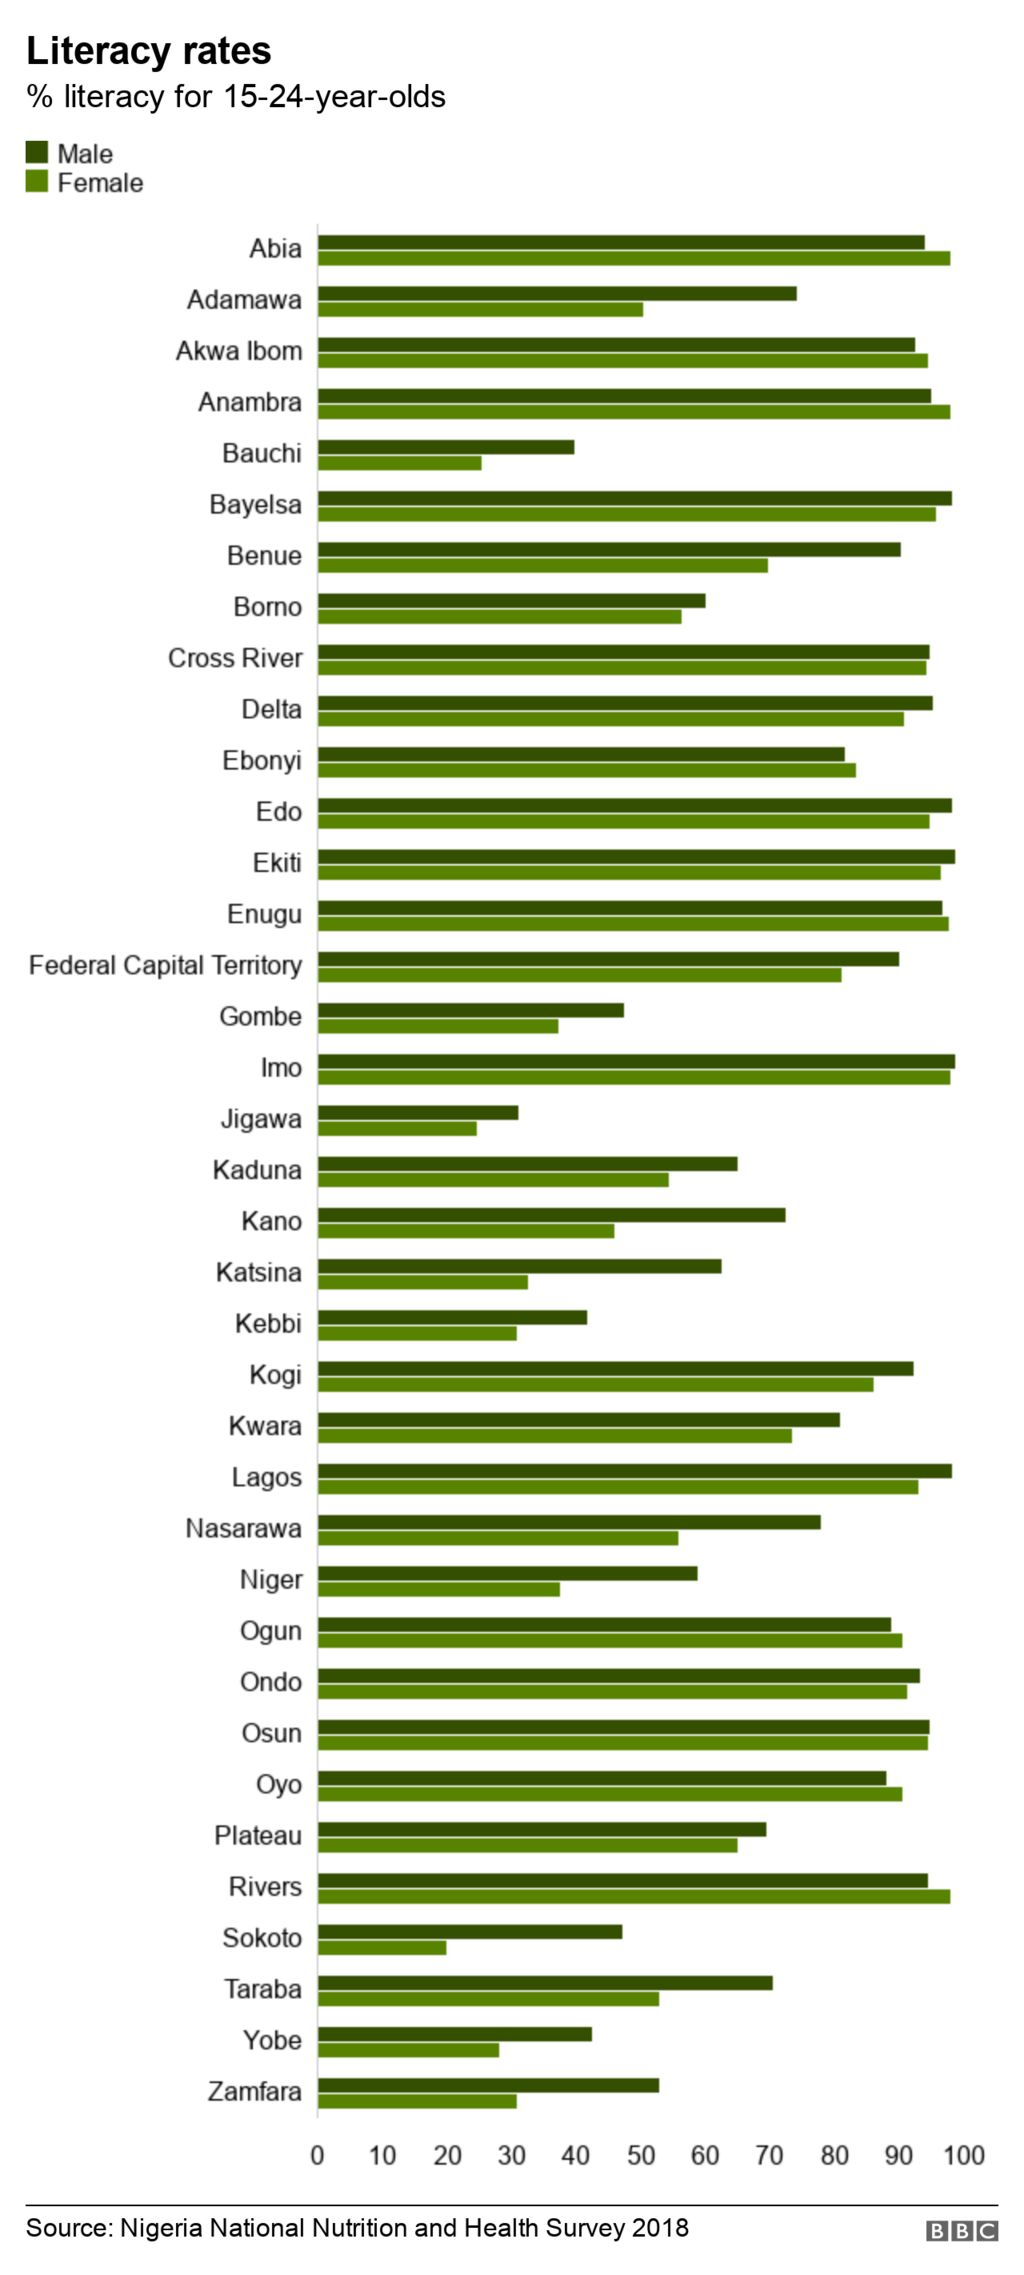 Percentage literacy rates per state for 15-24 year-olds in Nigeria